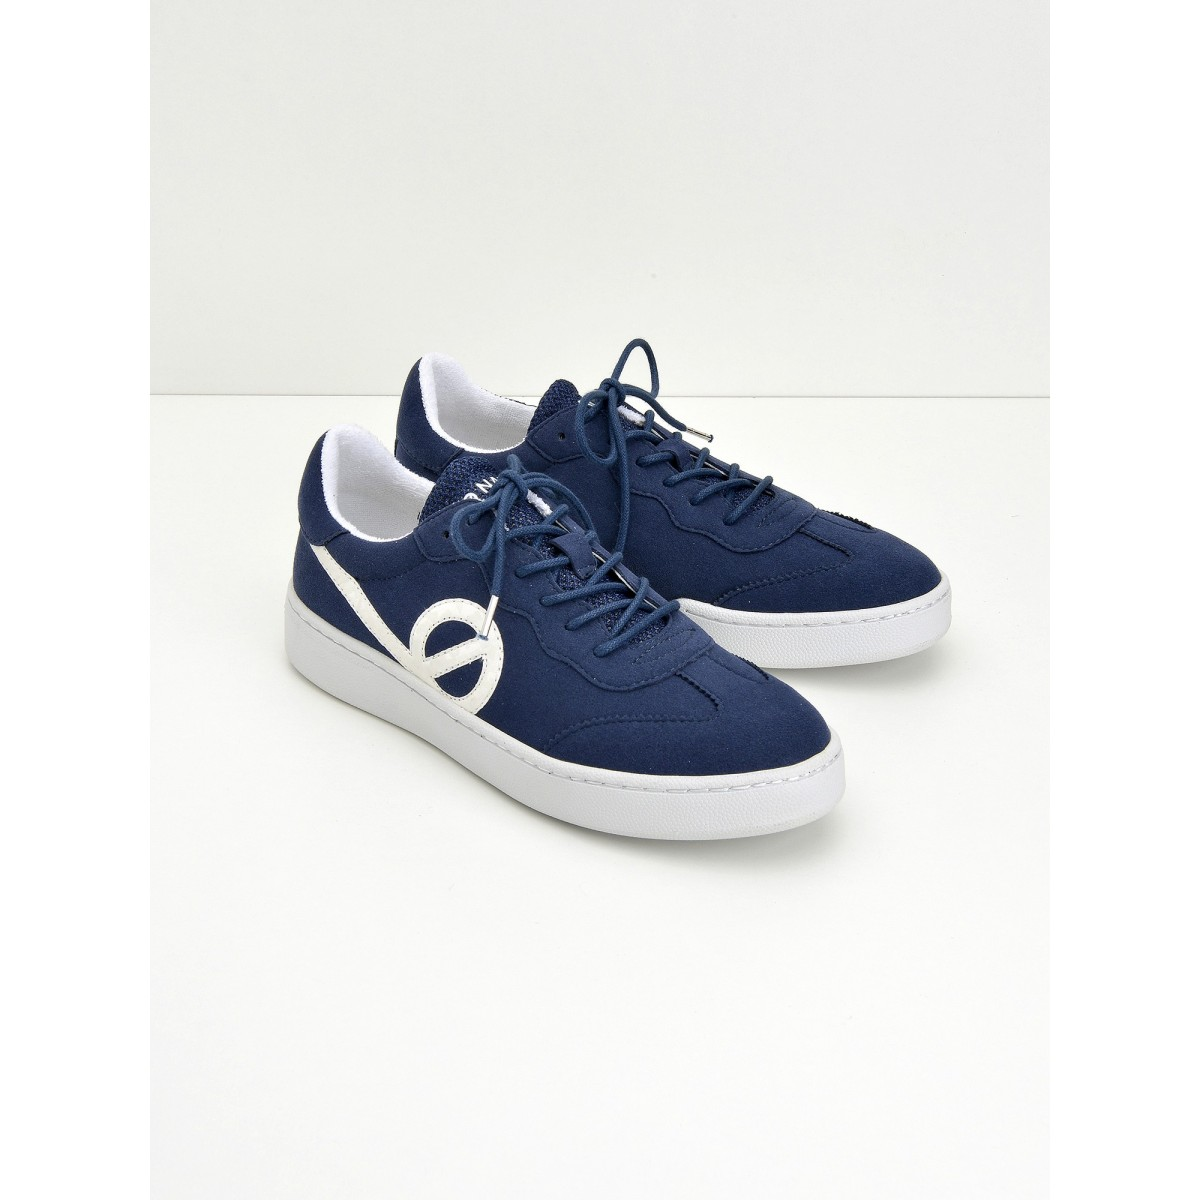 No Name Game Sneaker - Split - Navy